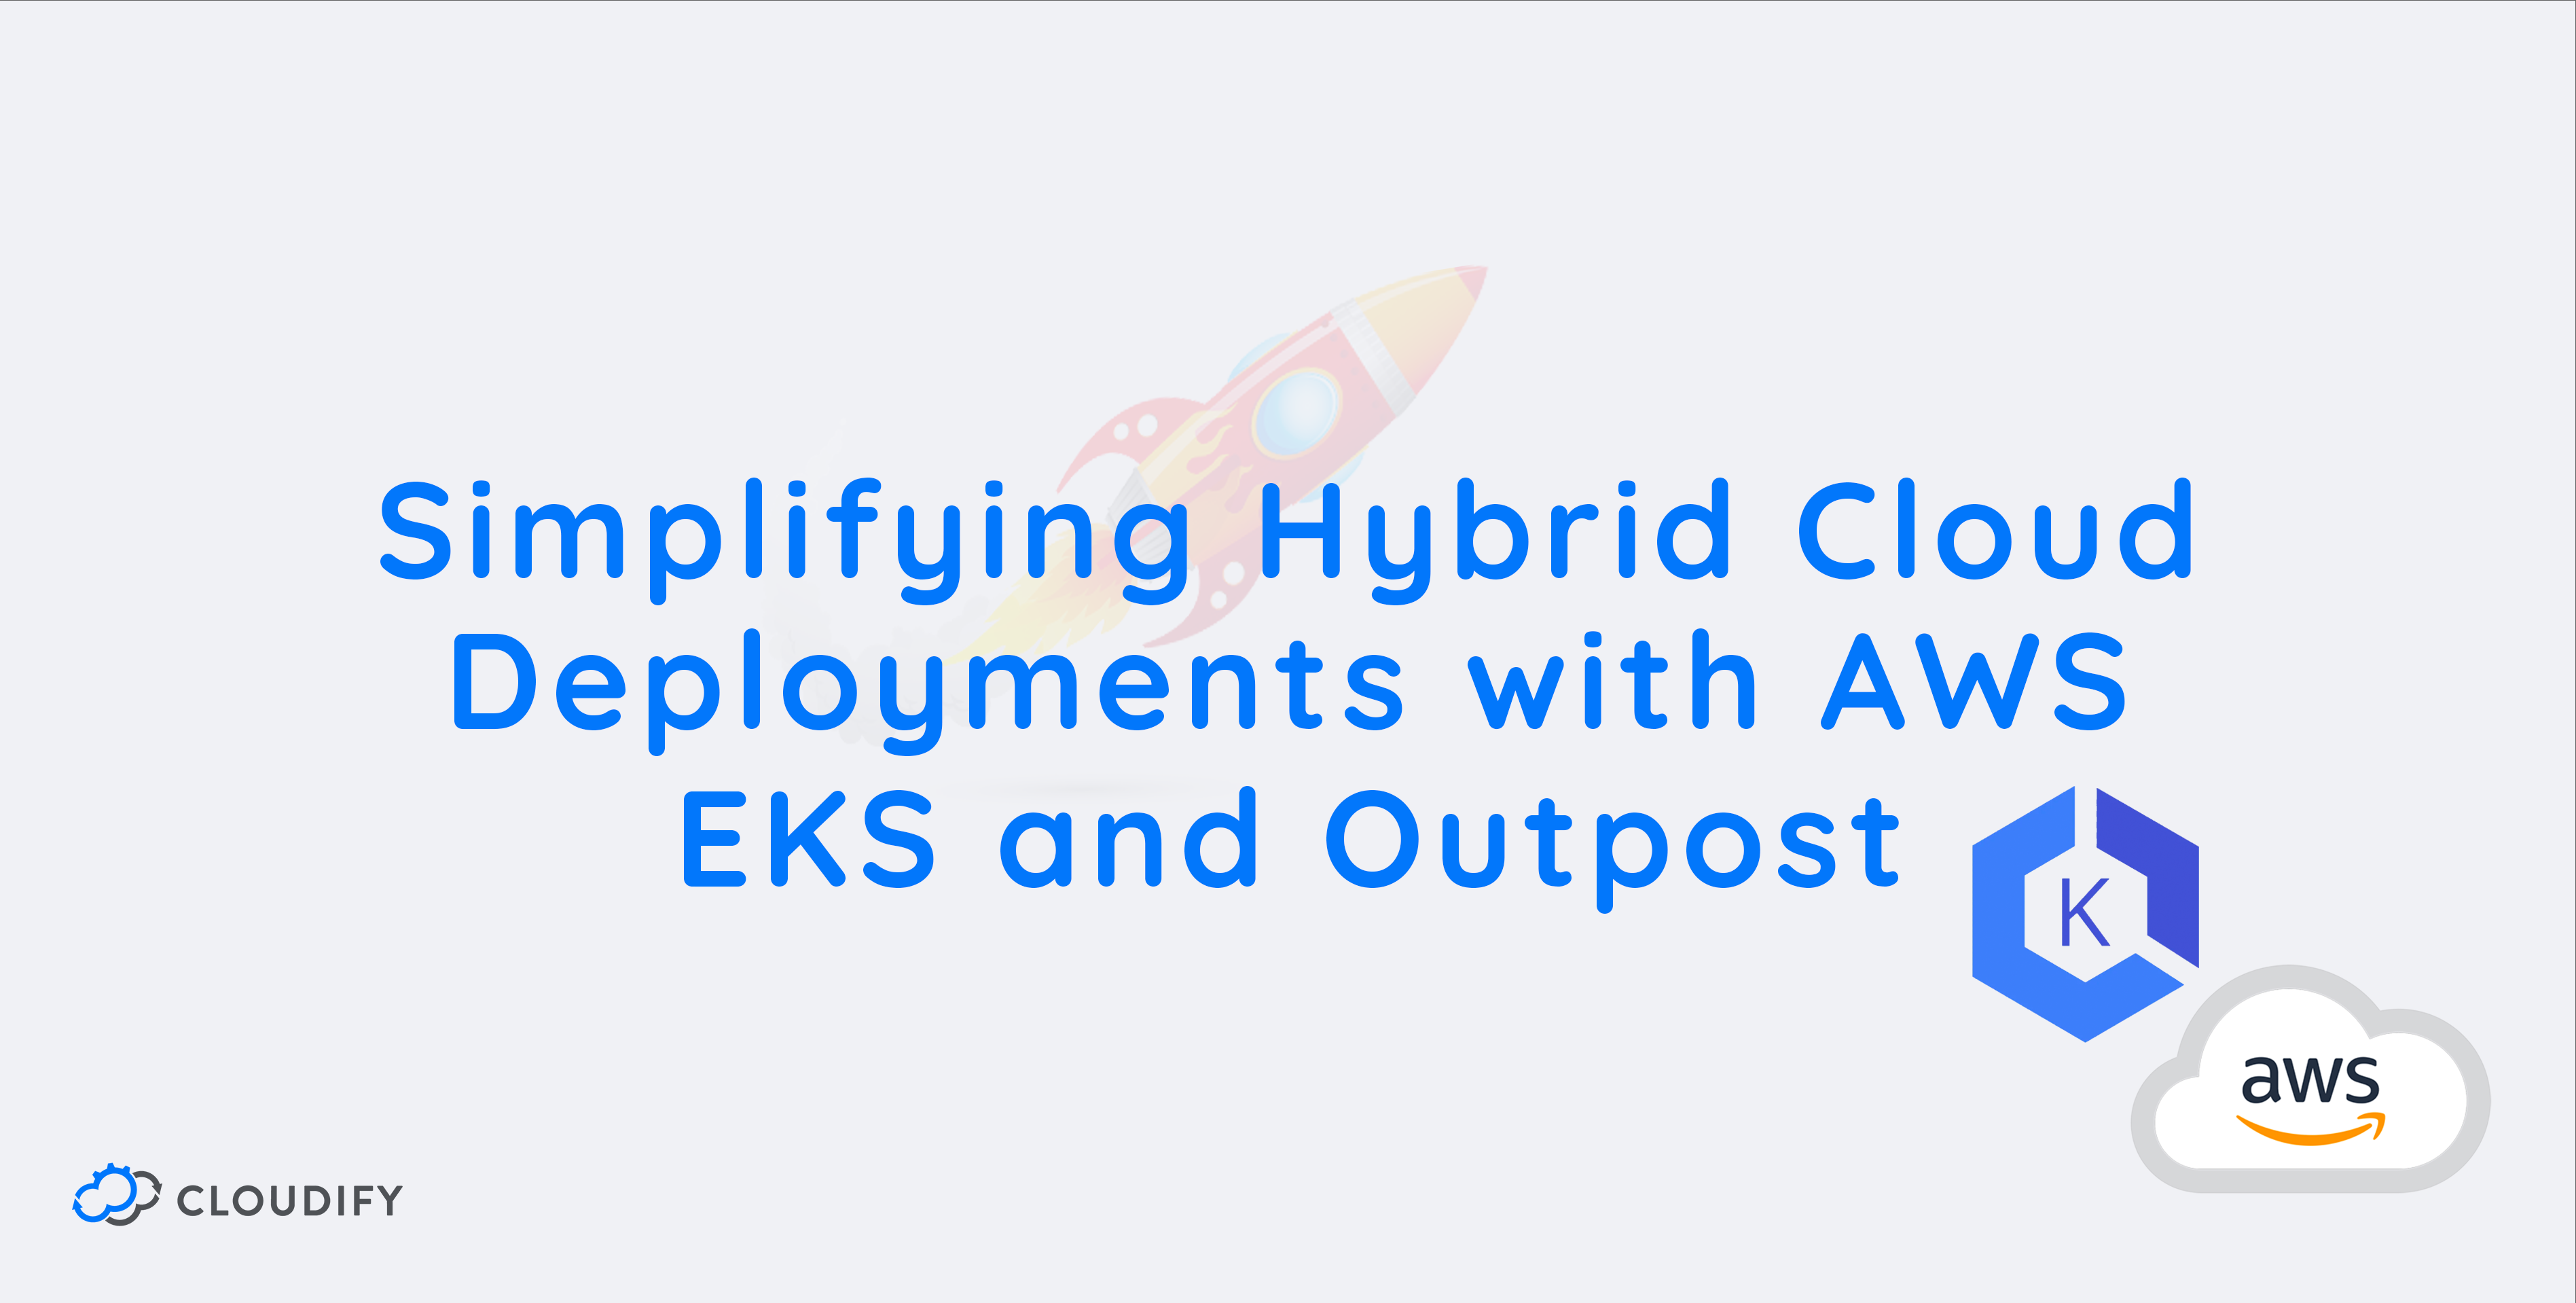 Simplifying Hybrid Cloud Deployments with AWS EKS and Outpost